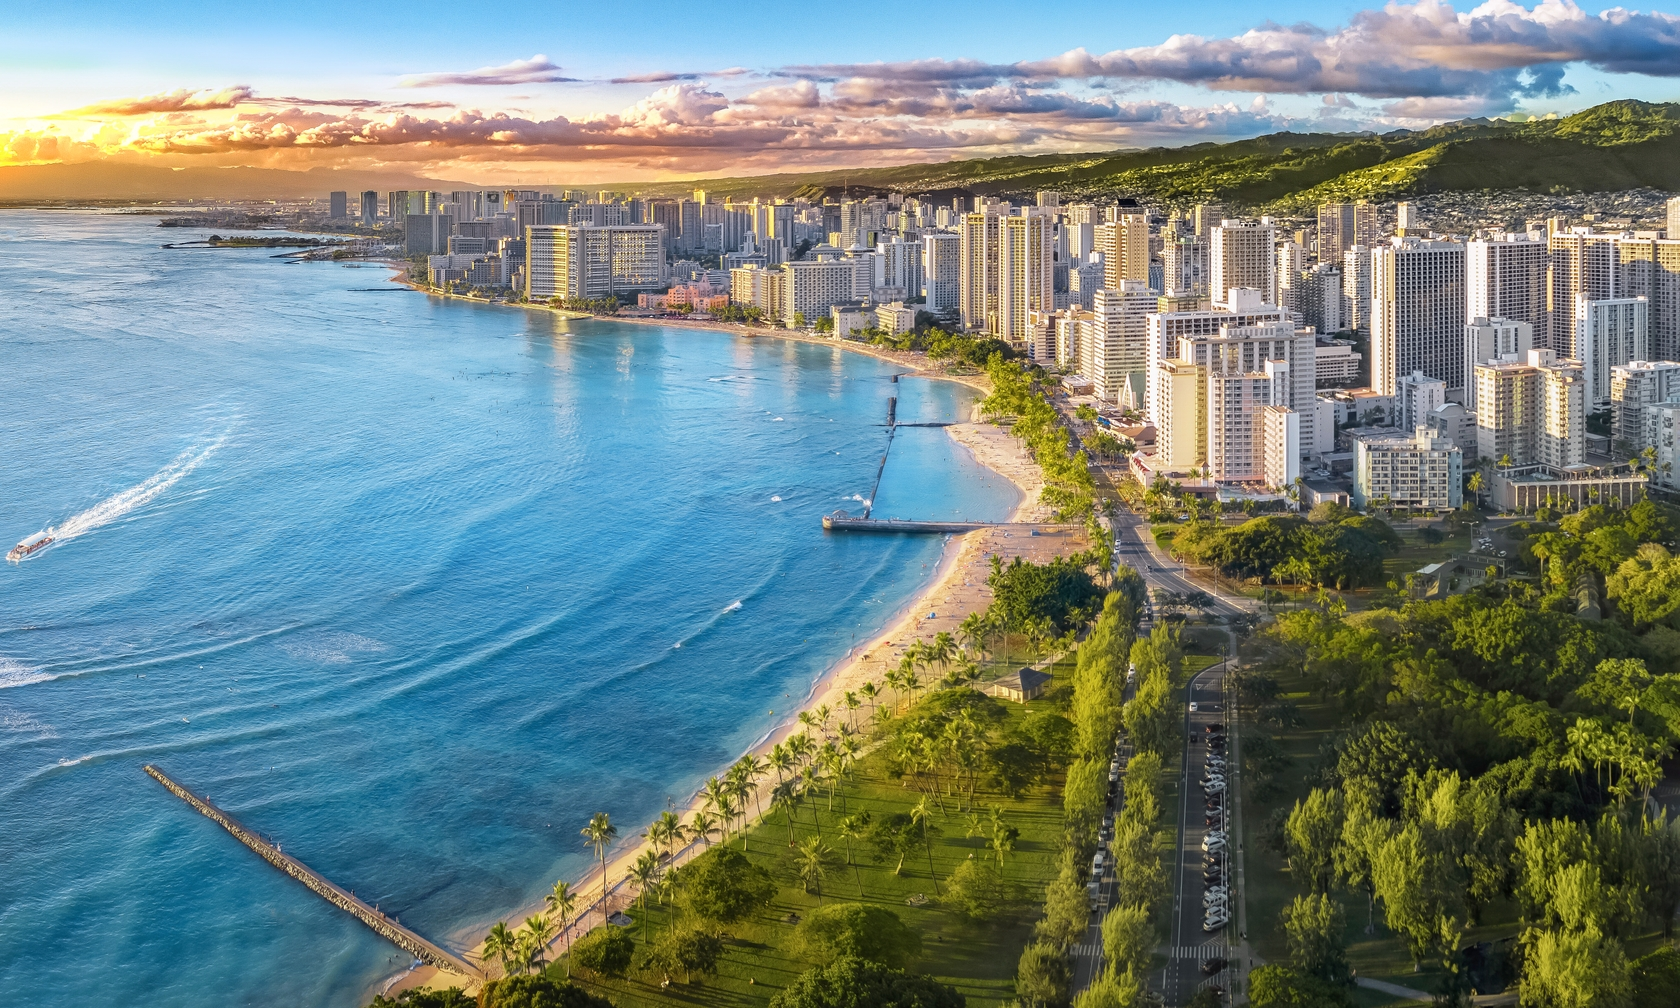 Vacation rental condos in Honolulu